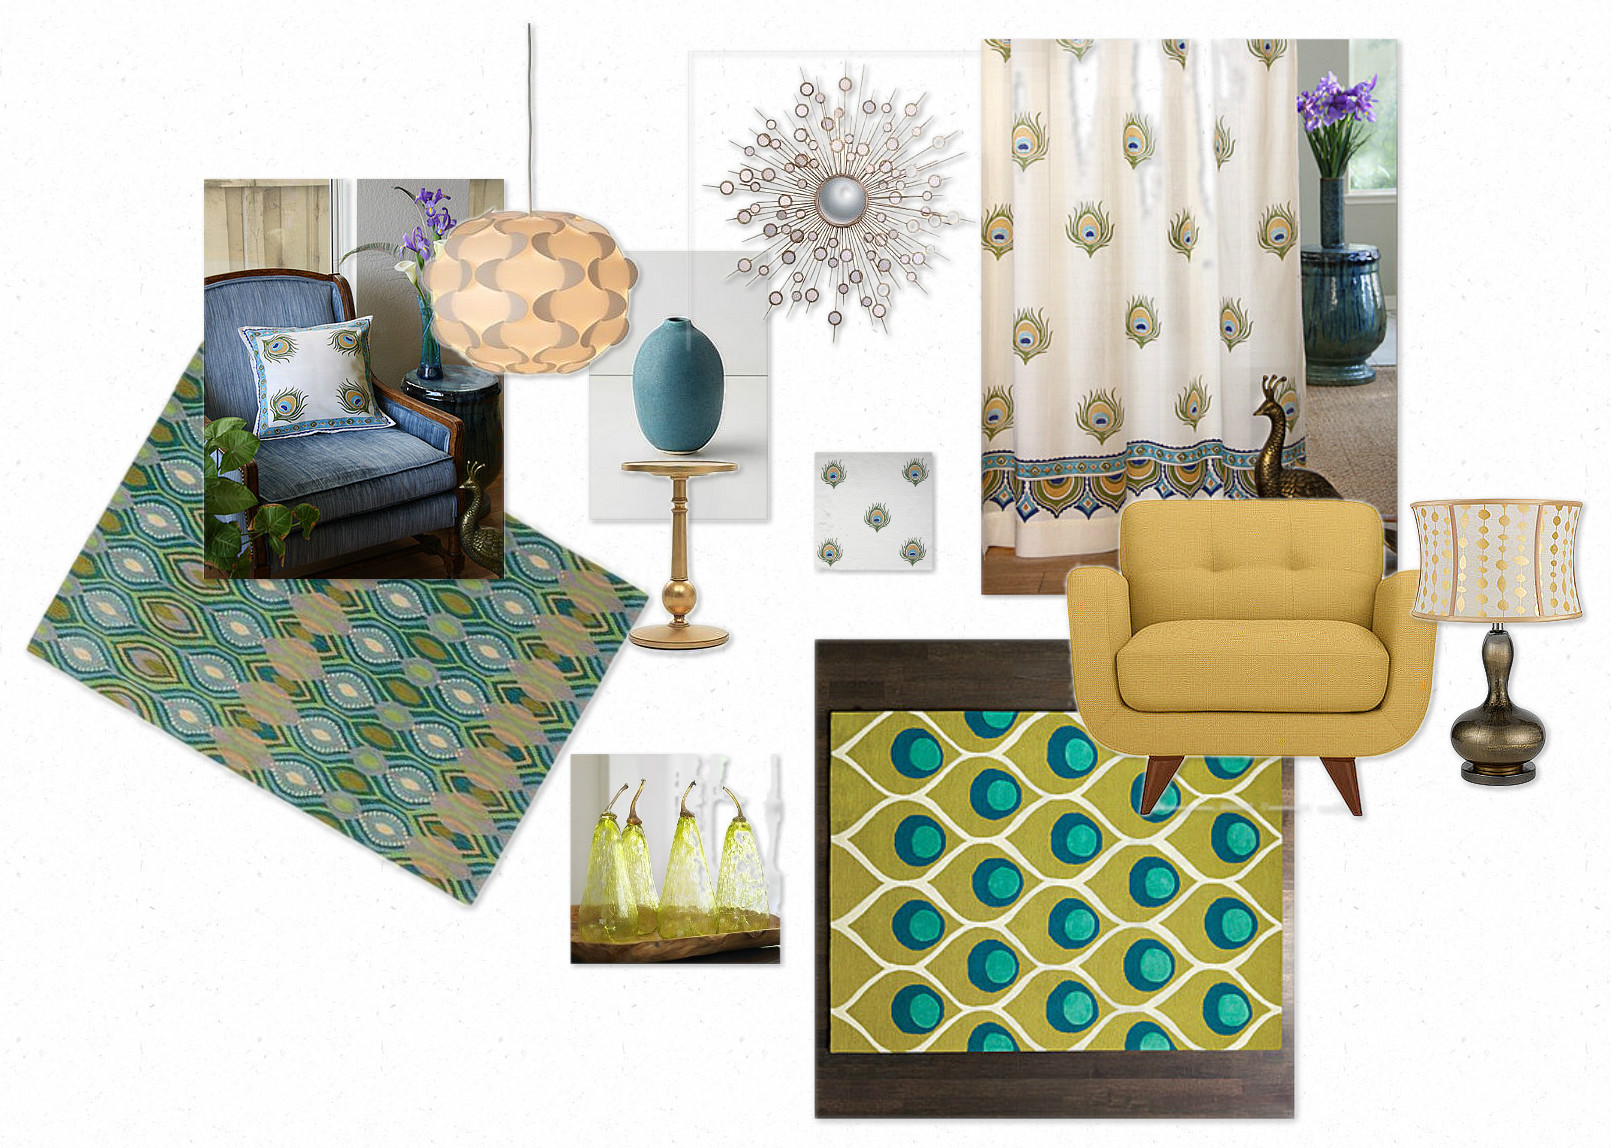 peacock inspired living room paint colours for rooms 2018 update saffron marigold turquoise curtains throw pillows rugs furniture